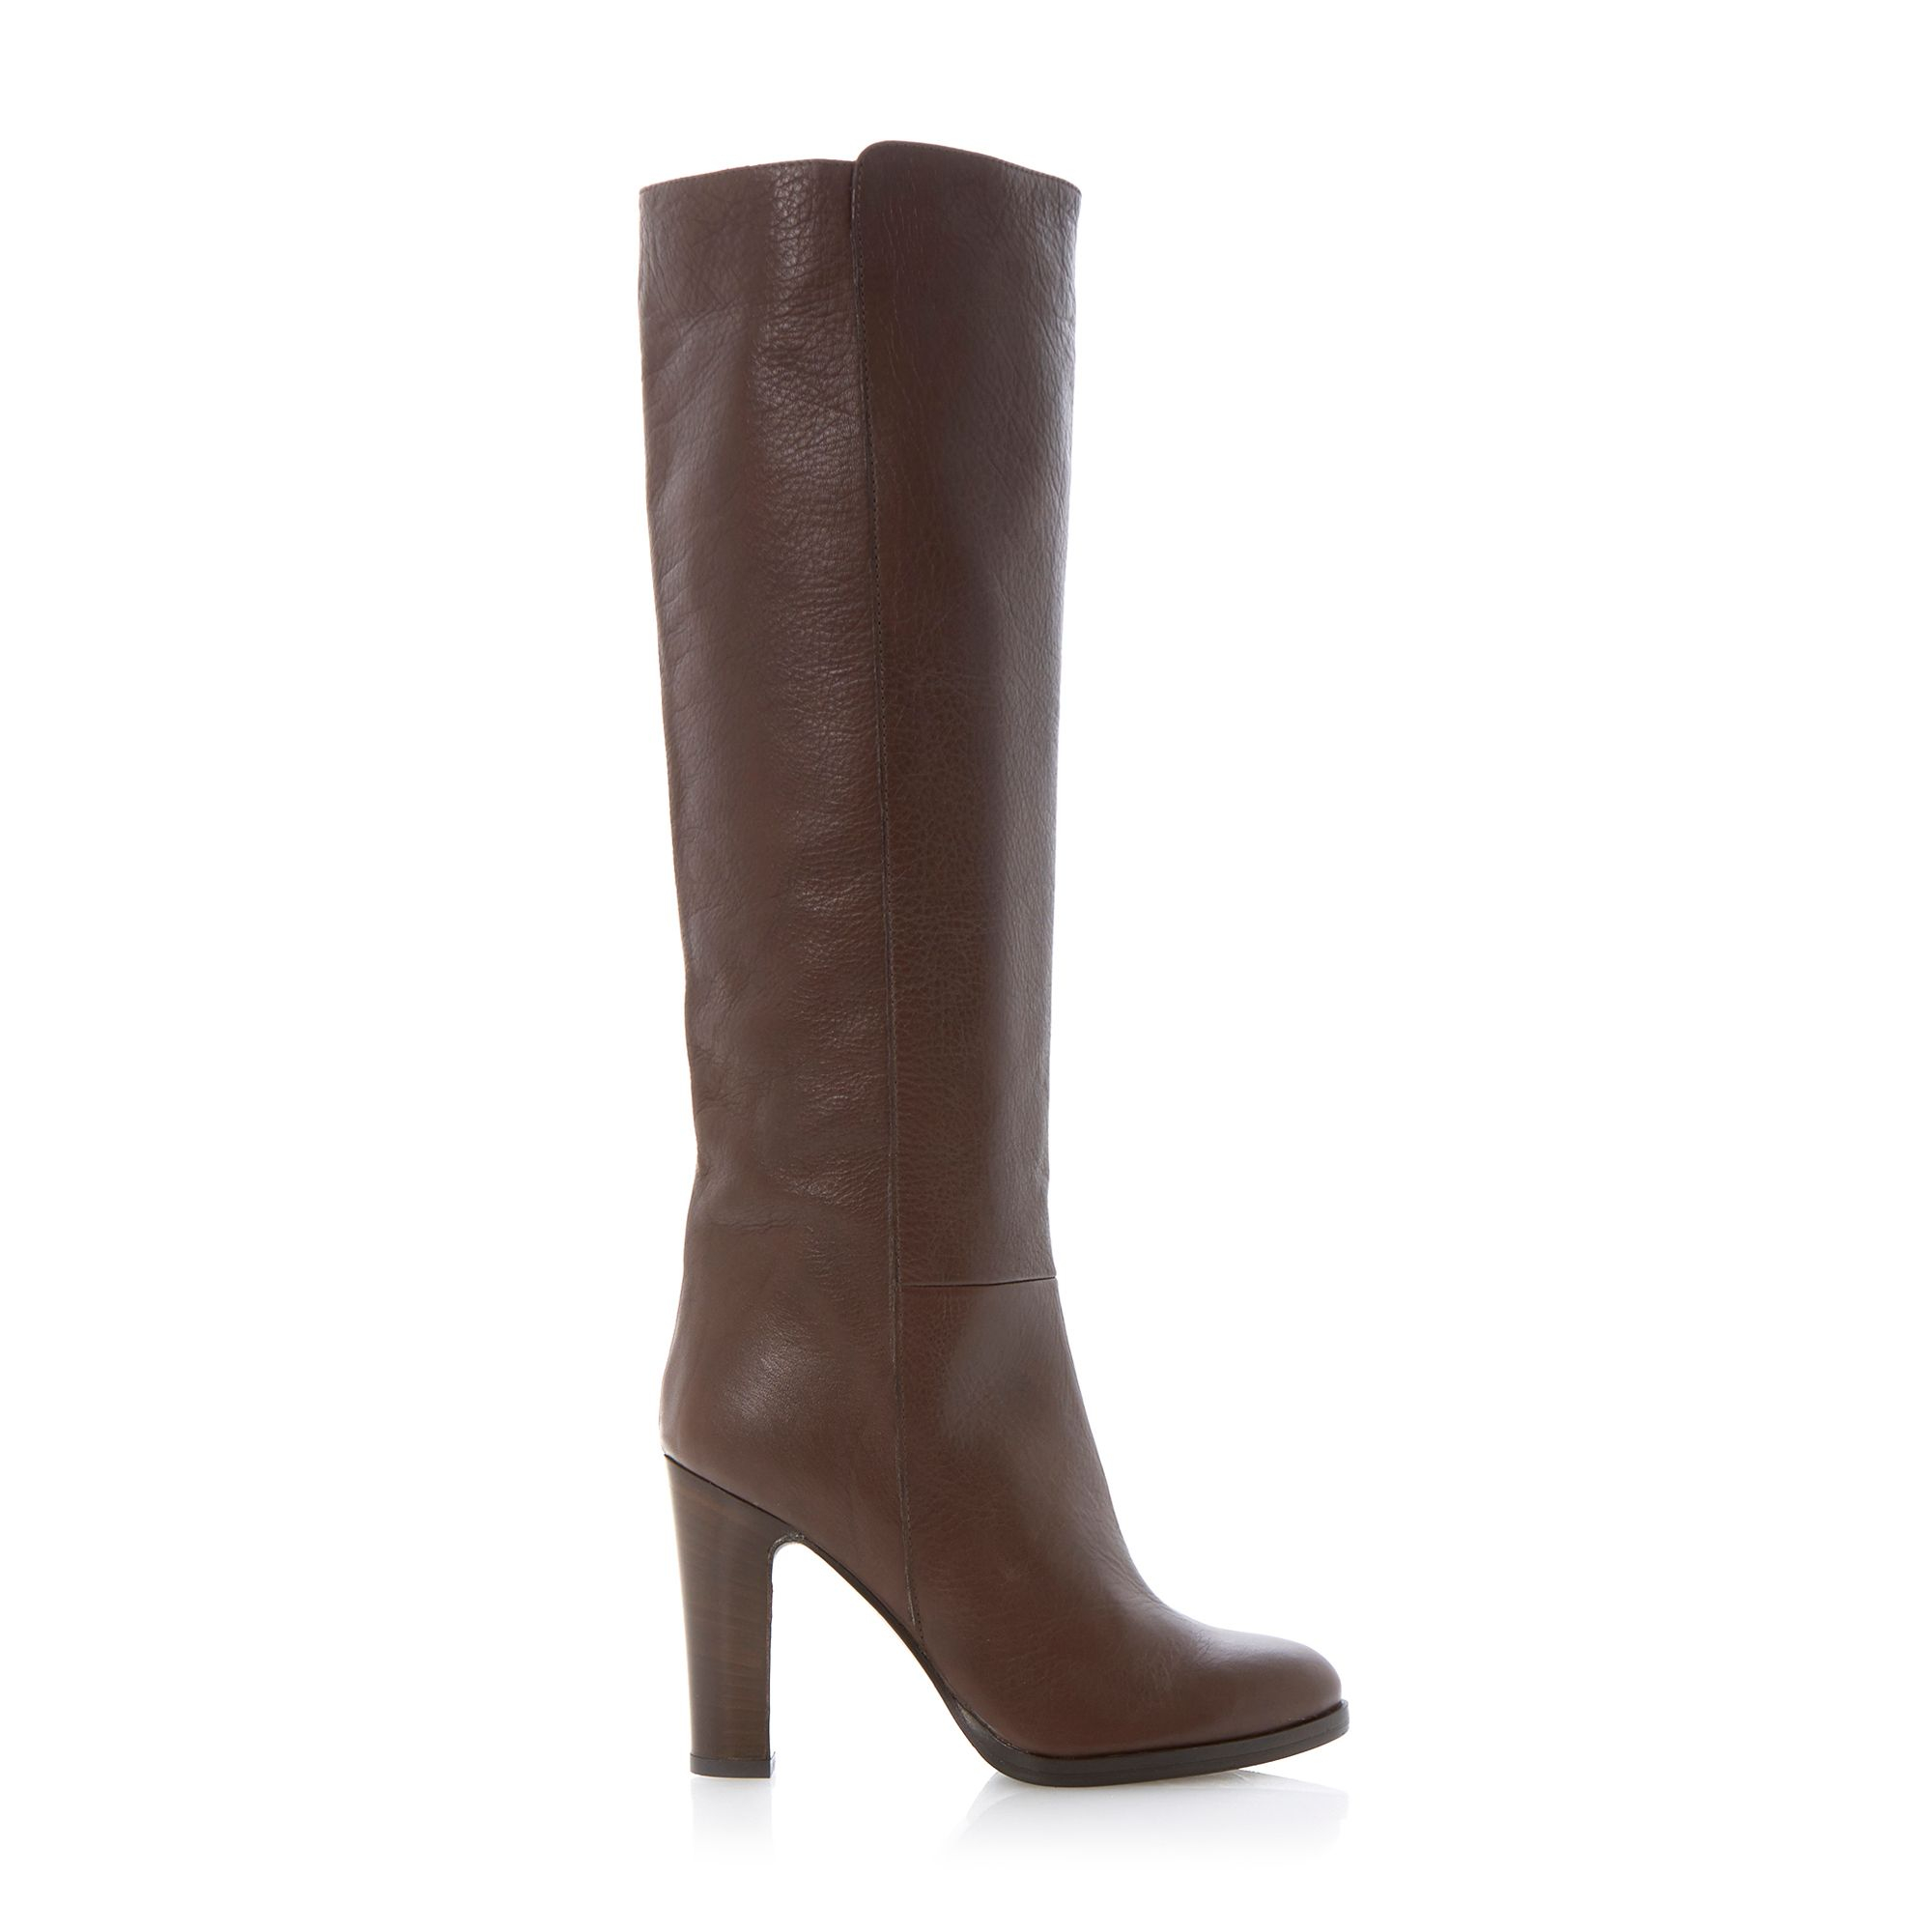 Knee High Boots Creating a splash with your shoes is easy when you wear a pair of knee high boots from Sinful Shoes. Our selection of stylish designs will have others doing a .